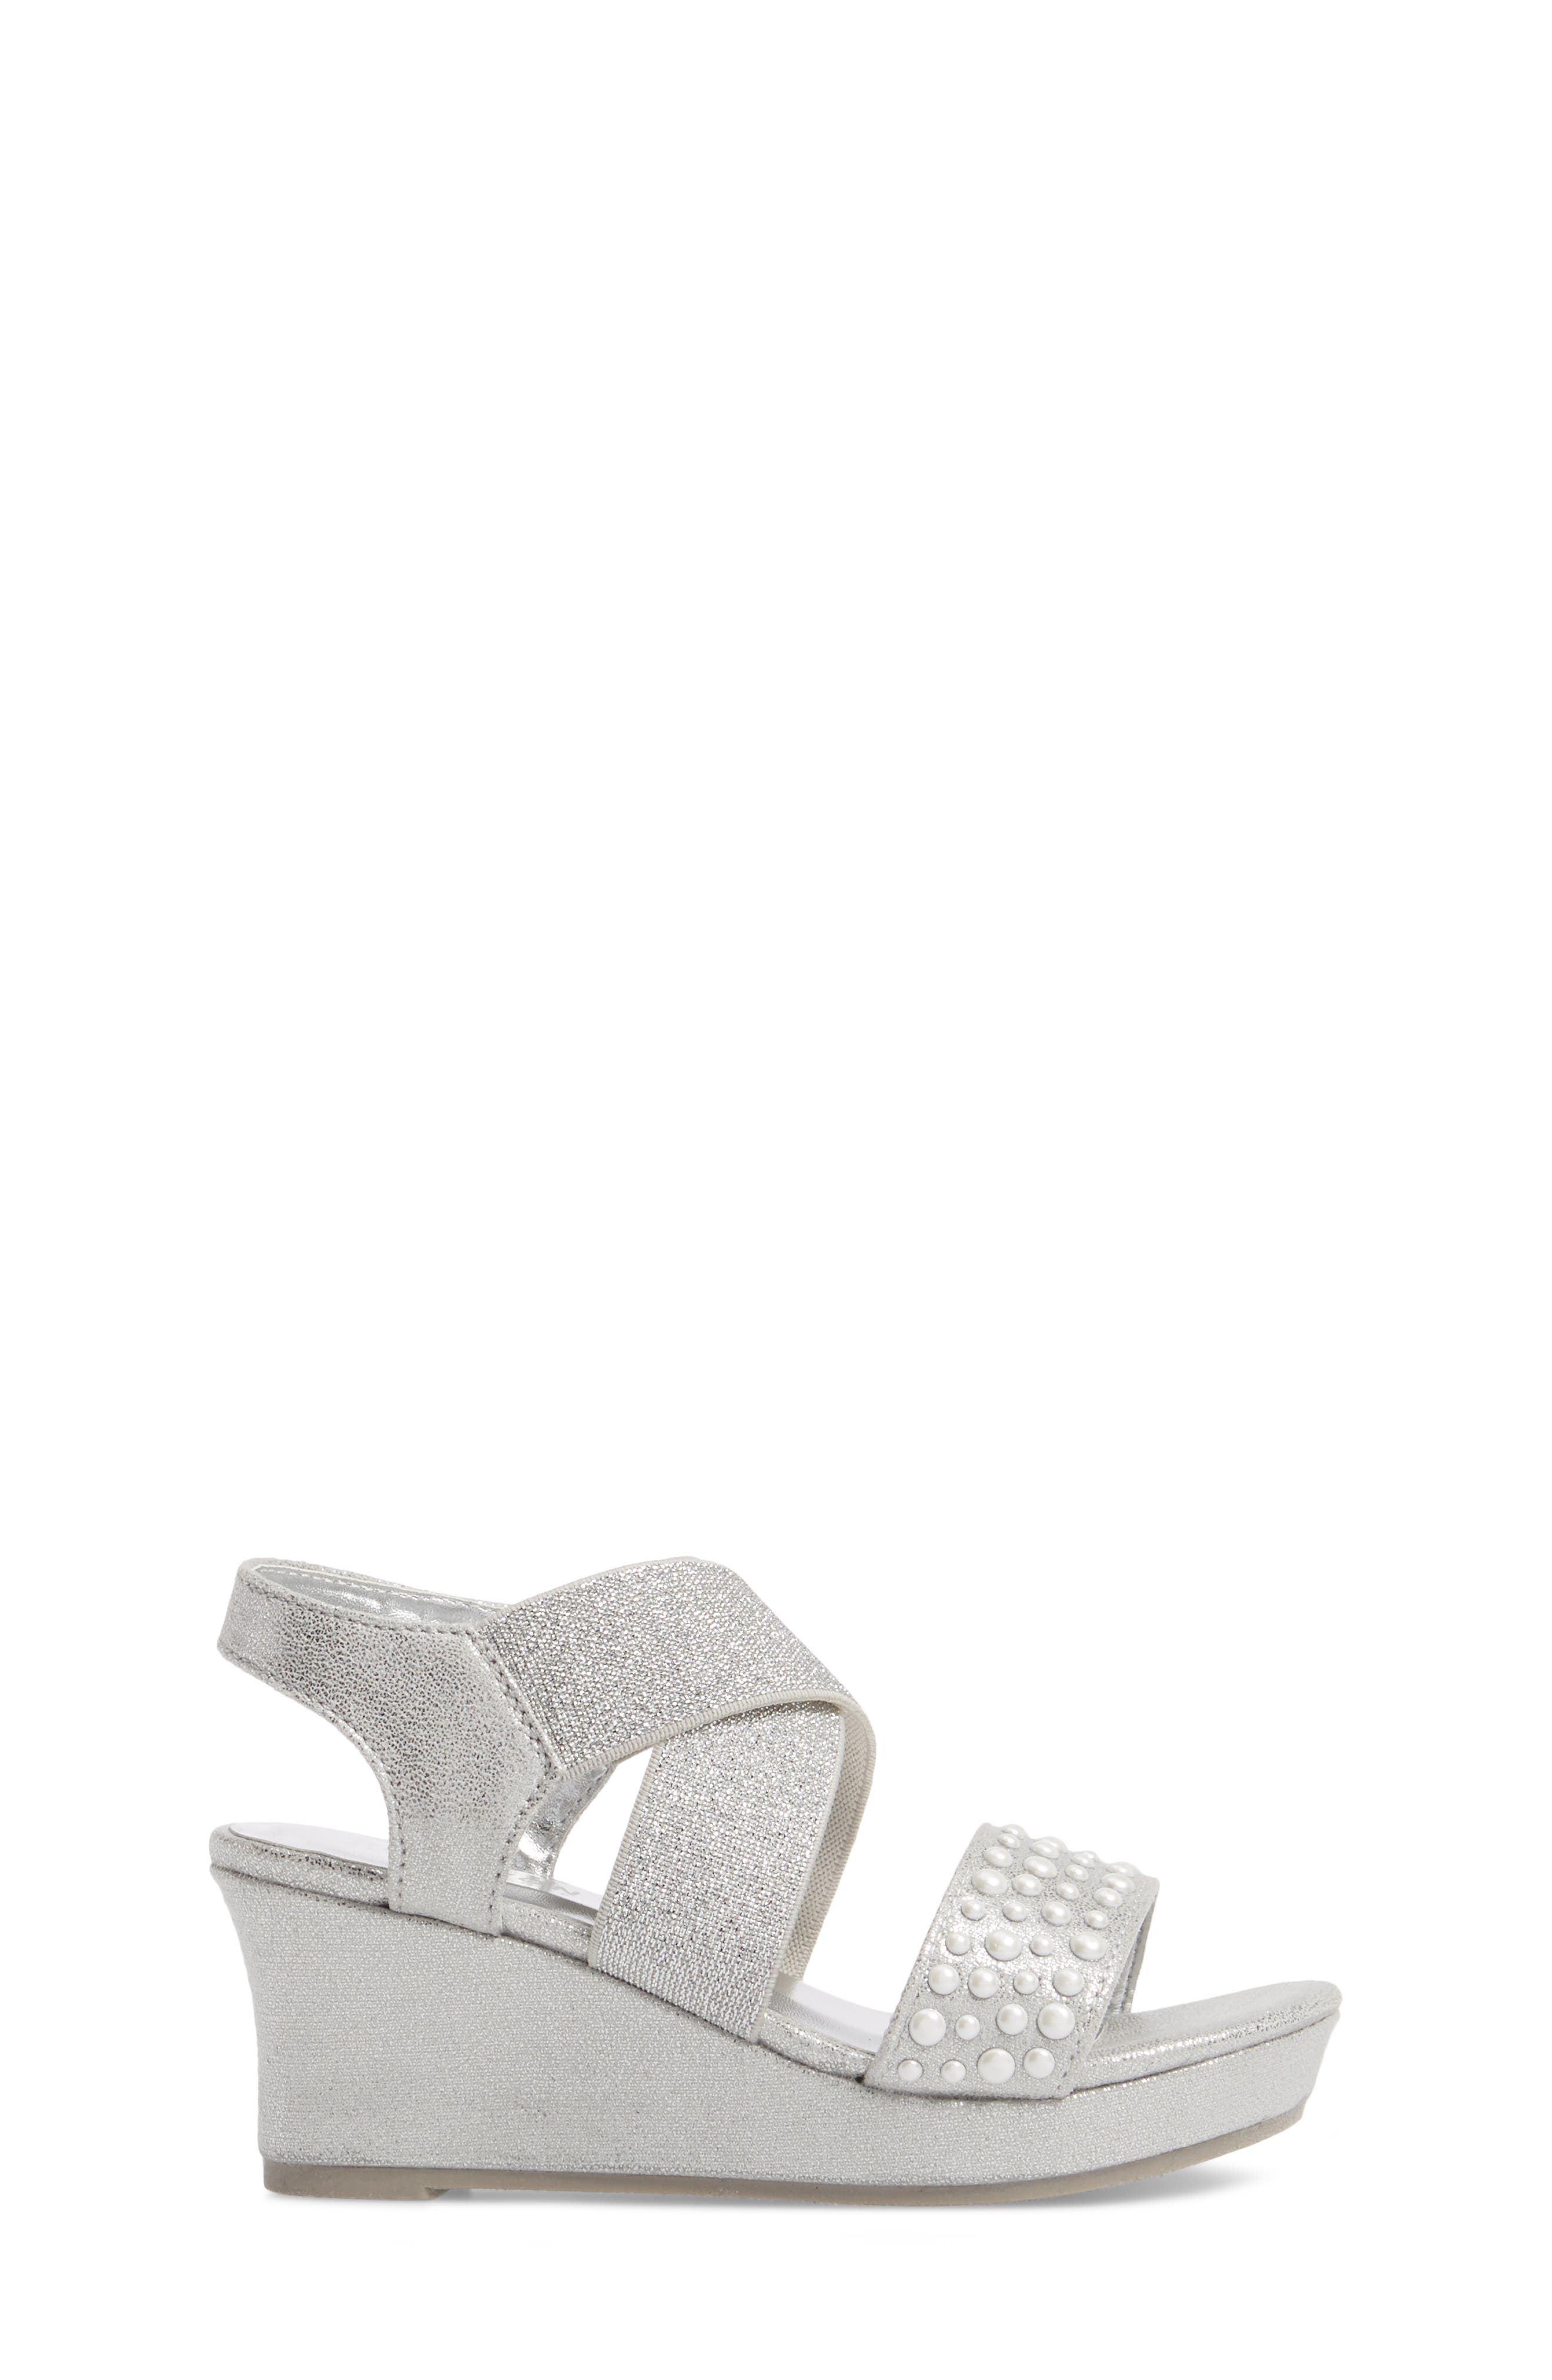 Reed Glimmer Wedge Sandal,                             Alternate thumbnail 3, color,                             Silver